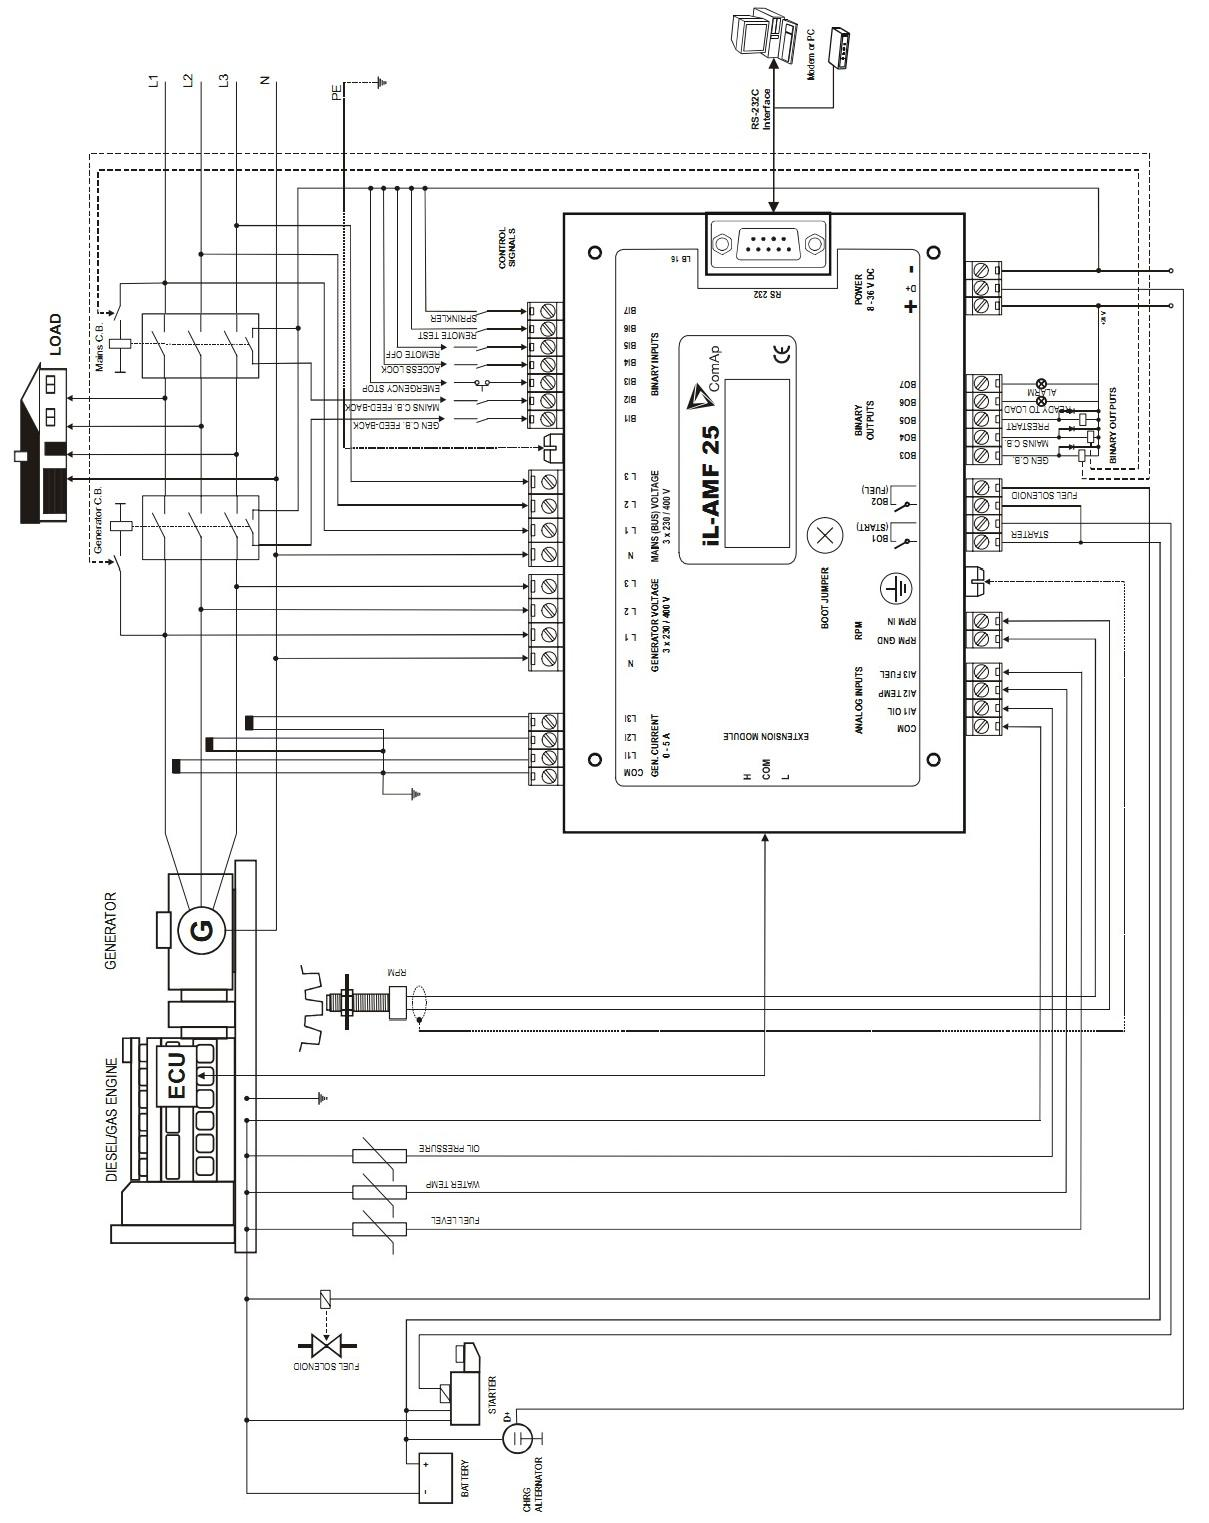 201210228323863 sx440 avr wiring diagram stamford mx321 manual \u2022 wiring diagrams stamford alternator wiring diagram manual at soozxer.org